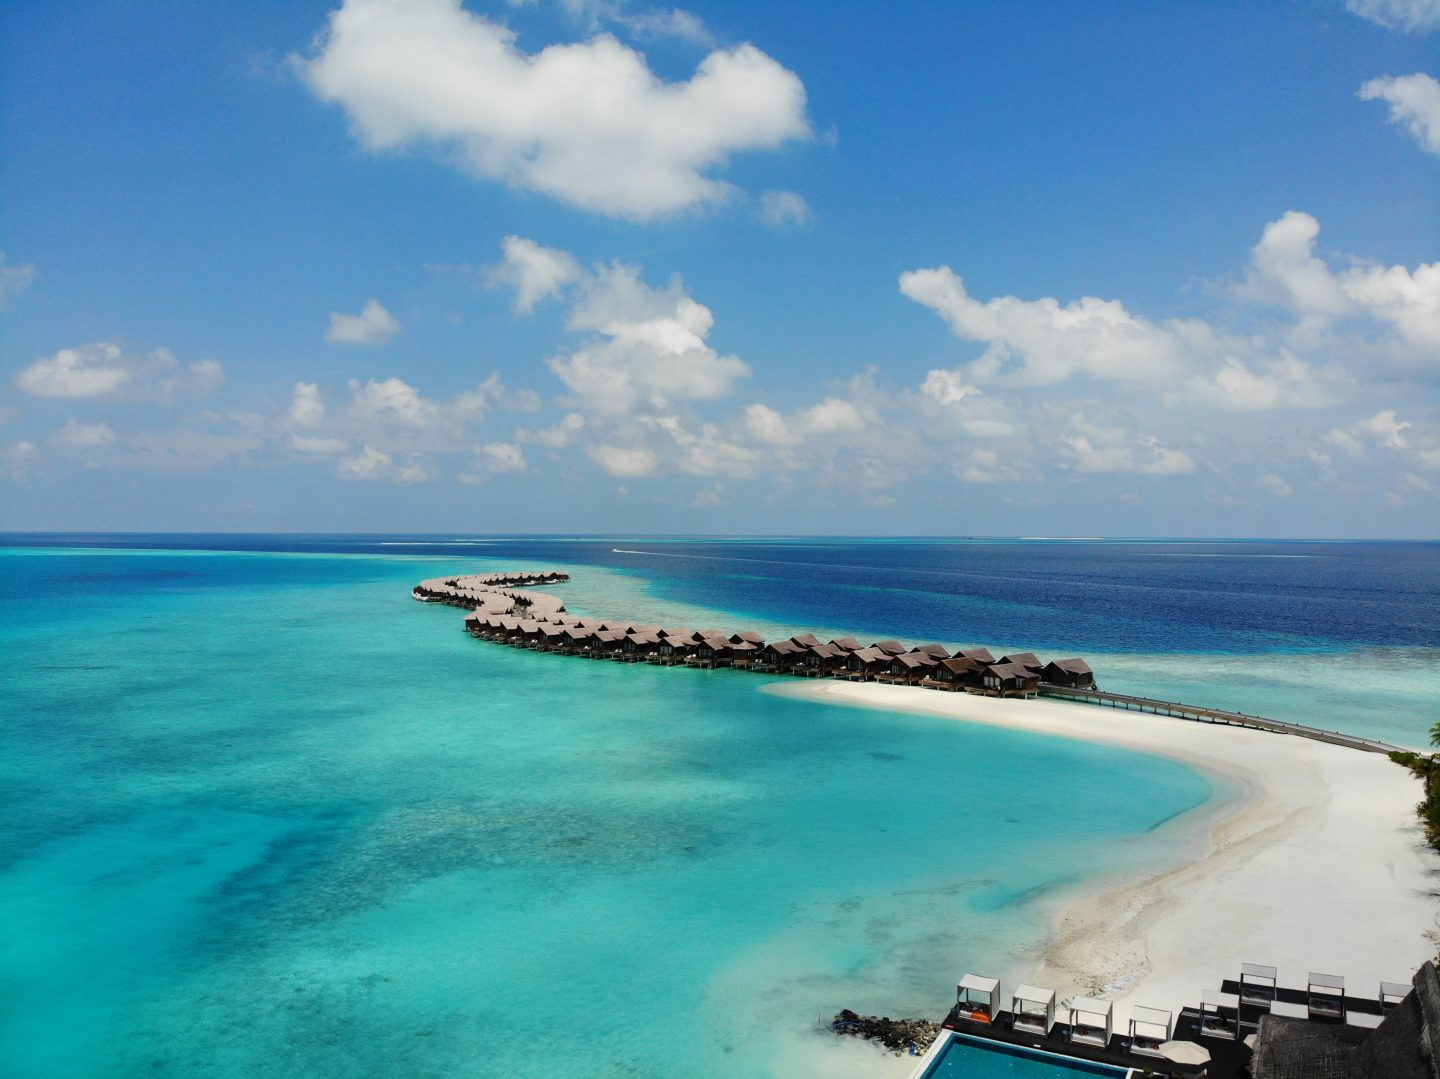 Maldives Travel Blog